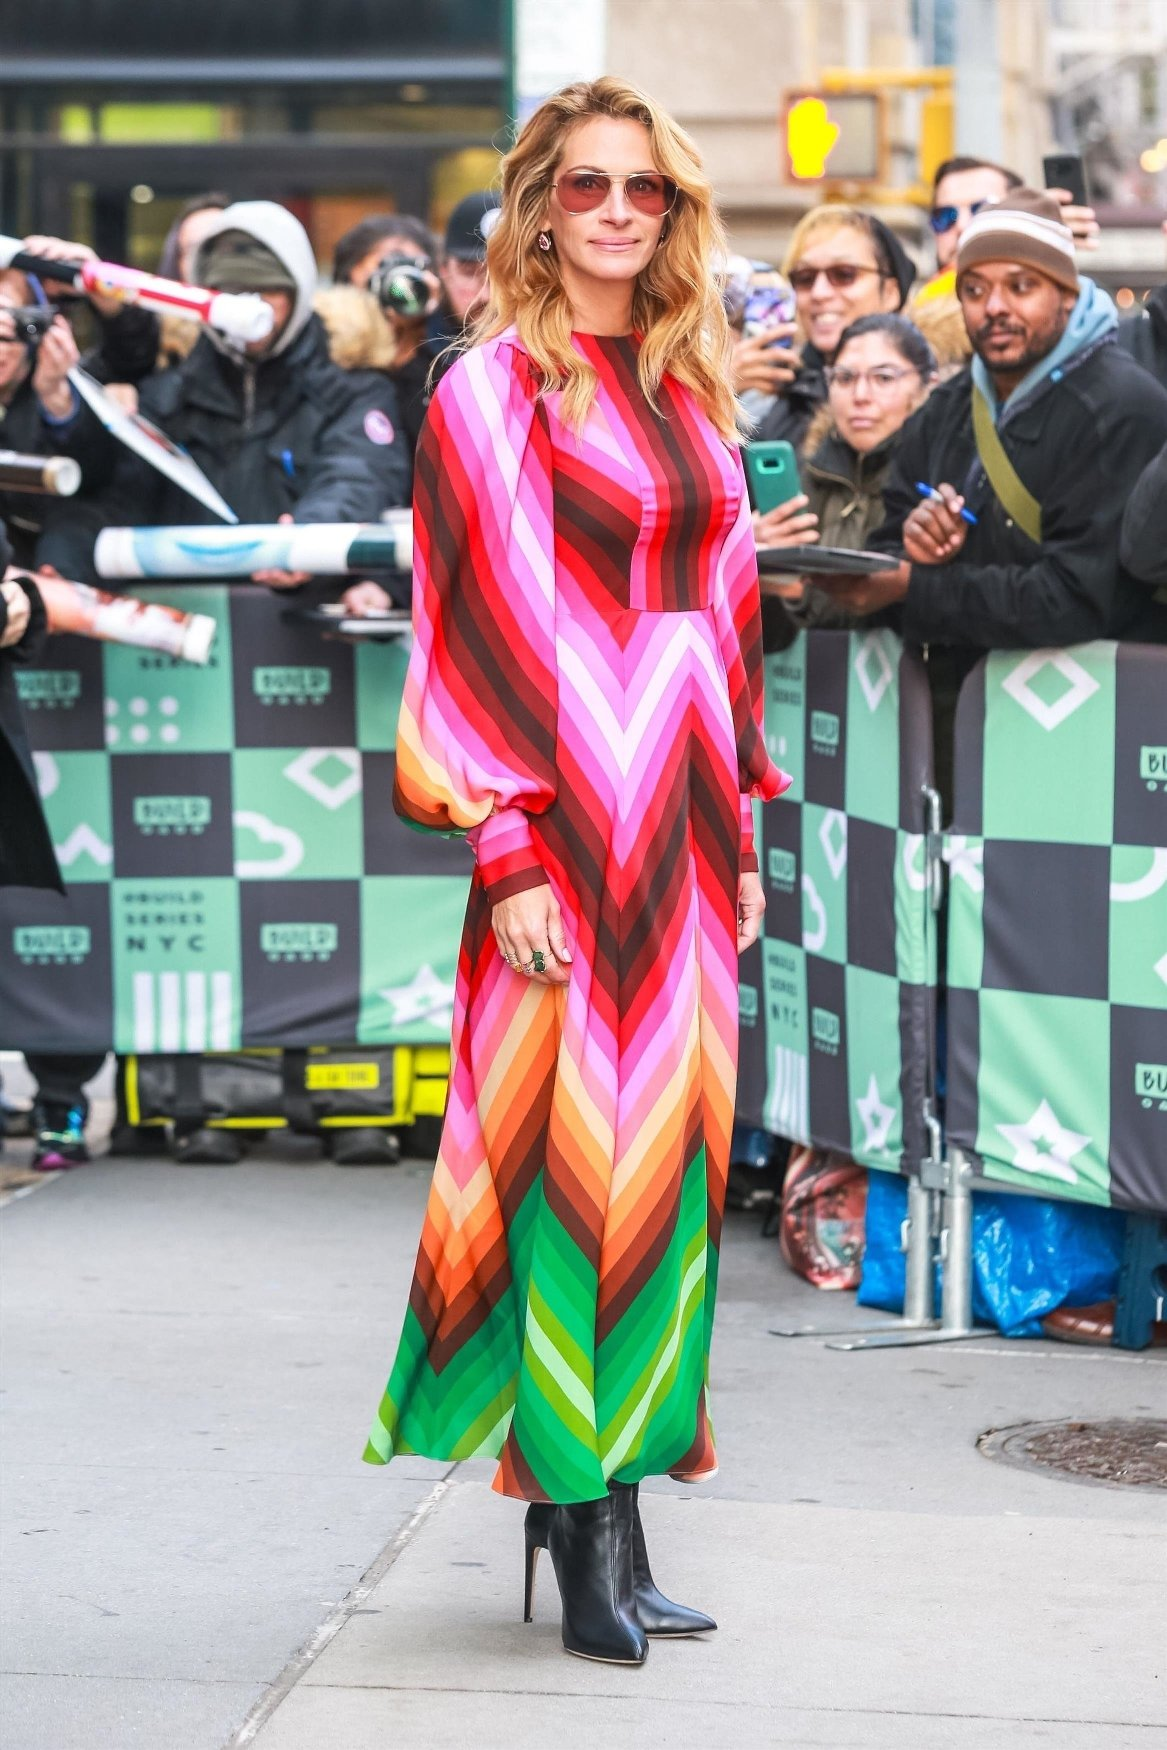 New York, NY  - Julia Roberts looks stunning as she stops by the Build Series in a multicolored dress in New York. Julia stopped to sign autographs for all of her waiting fans before heading inside.  Pictured: Julia Roberts    *UK Clients - Pictures Containing Children Please Pixelate Face Prior To Publication*, Image: 400090935, License: Rights-managed, Restrictions: , Model Release: no, Credit line: Profimedia, AKM-GSI